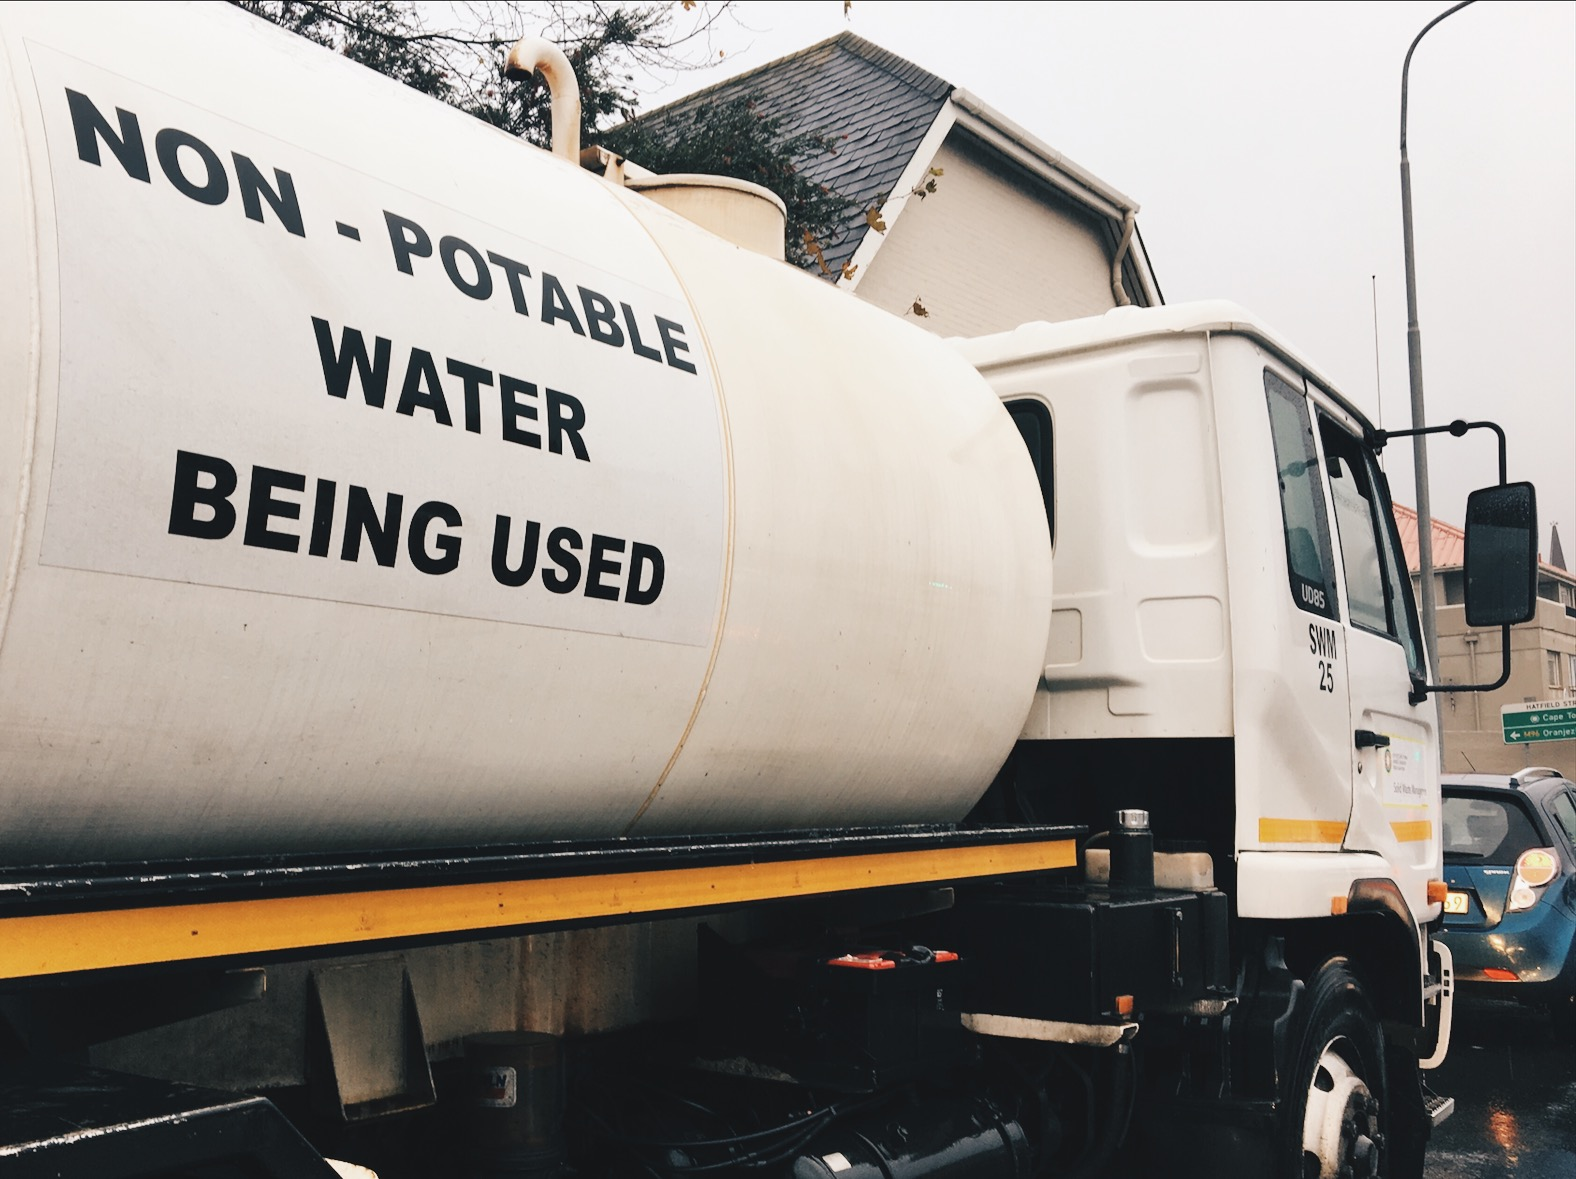 Cape Town desalination plans in progress to help city's drought